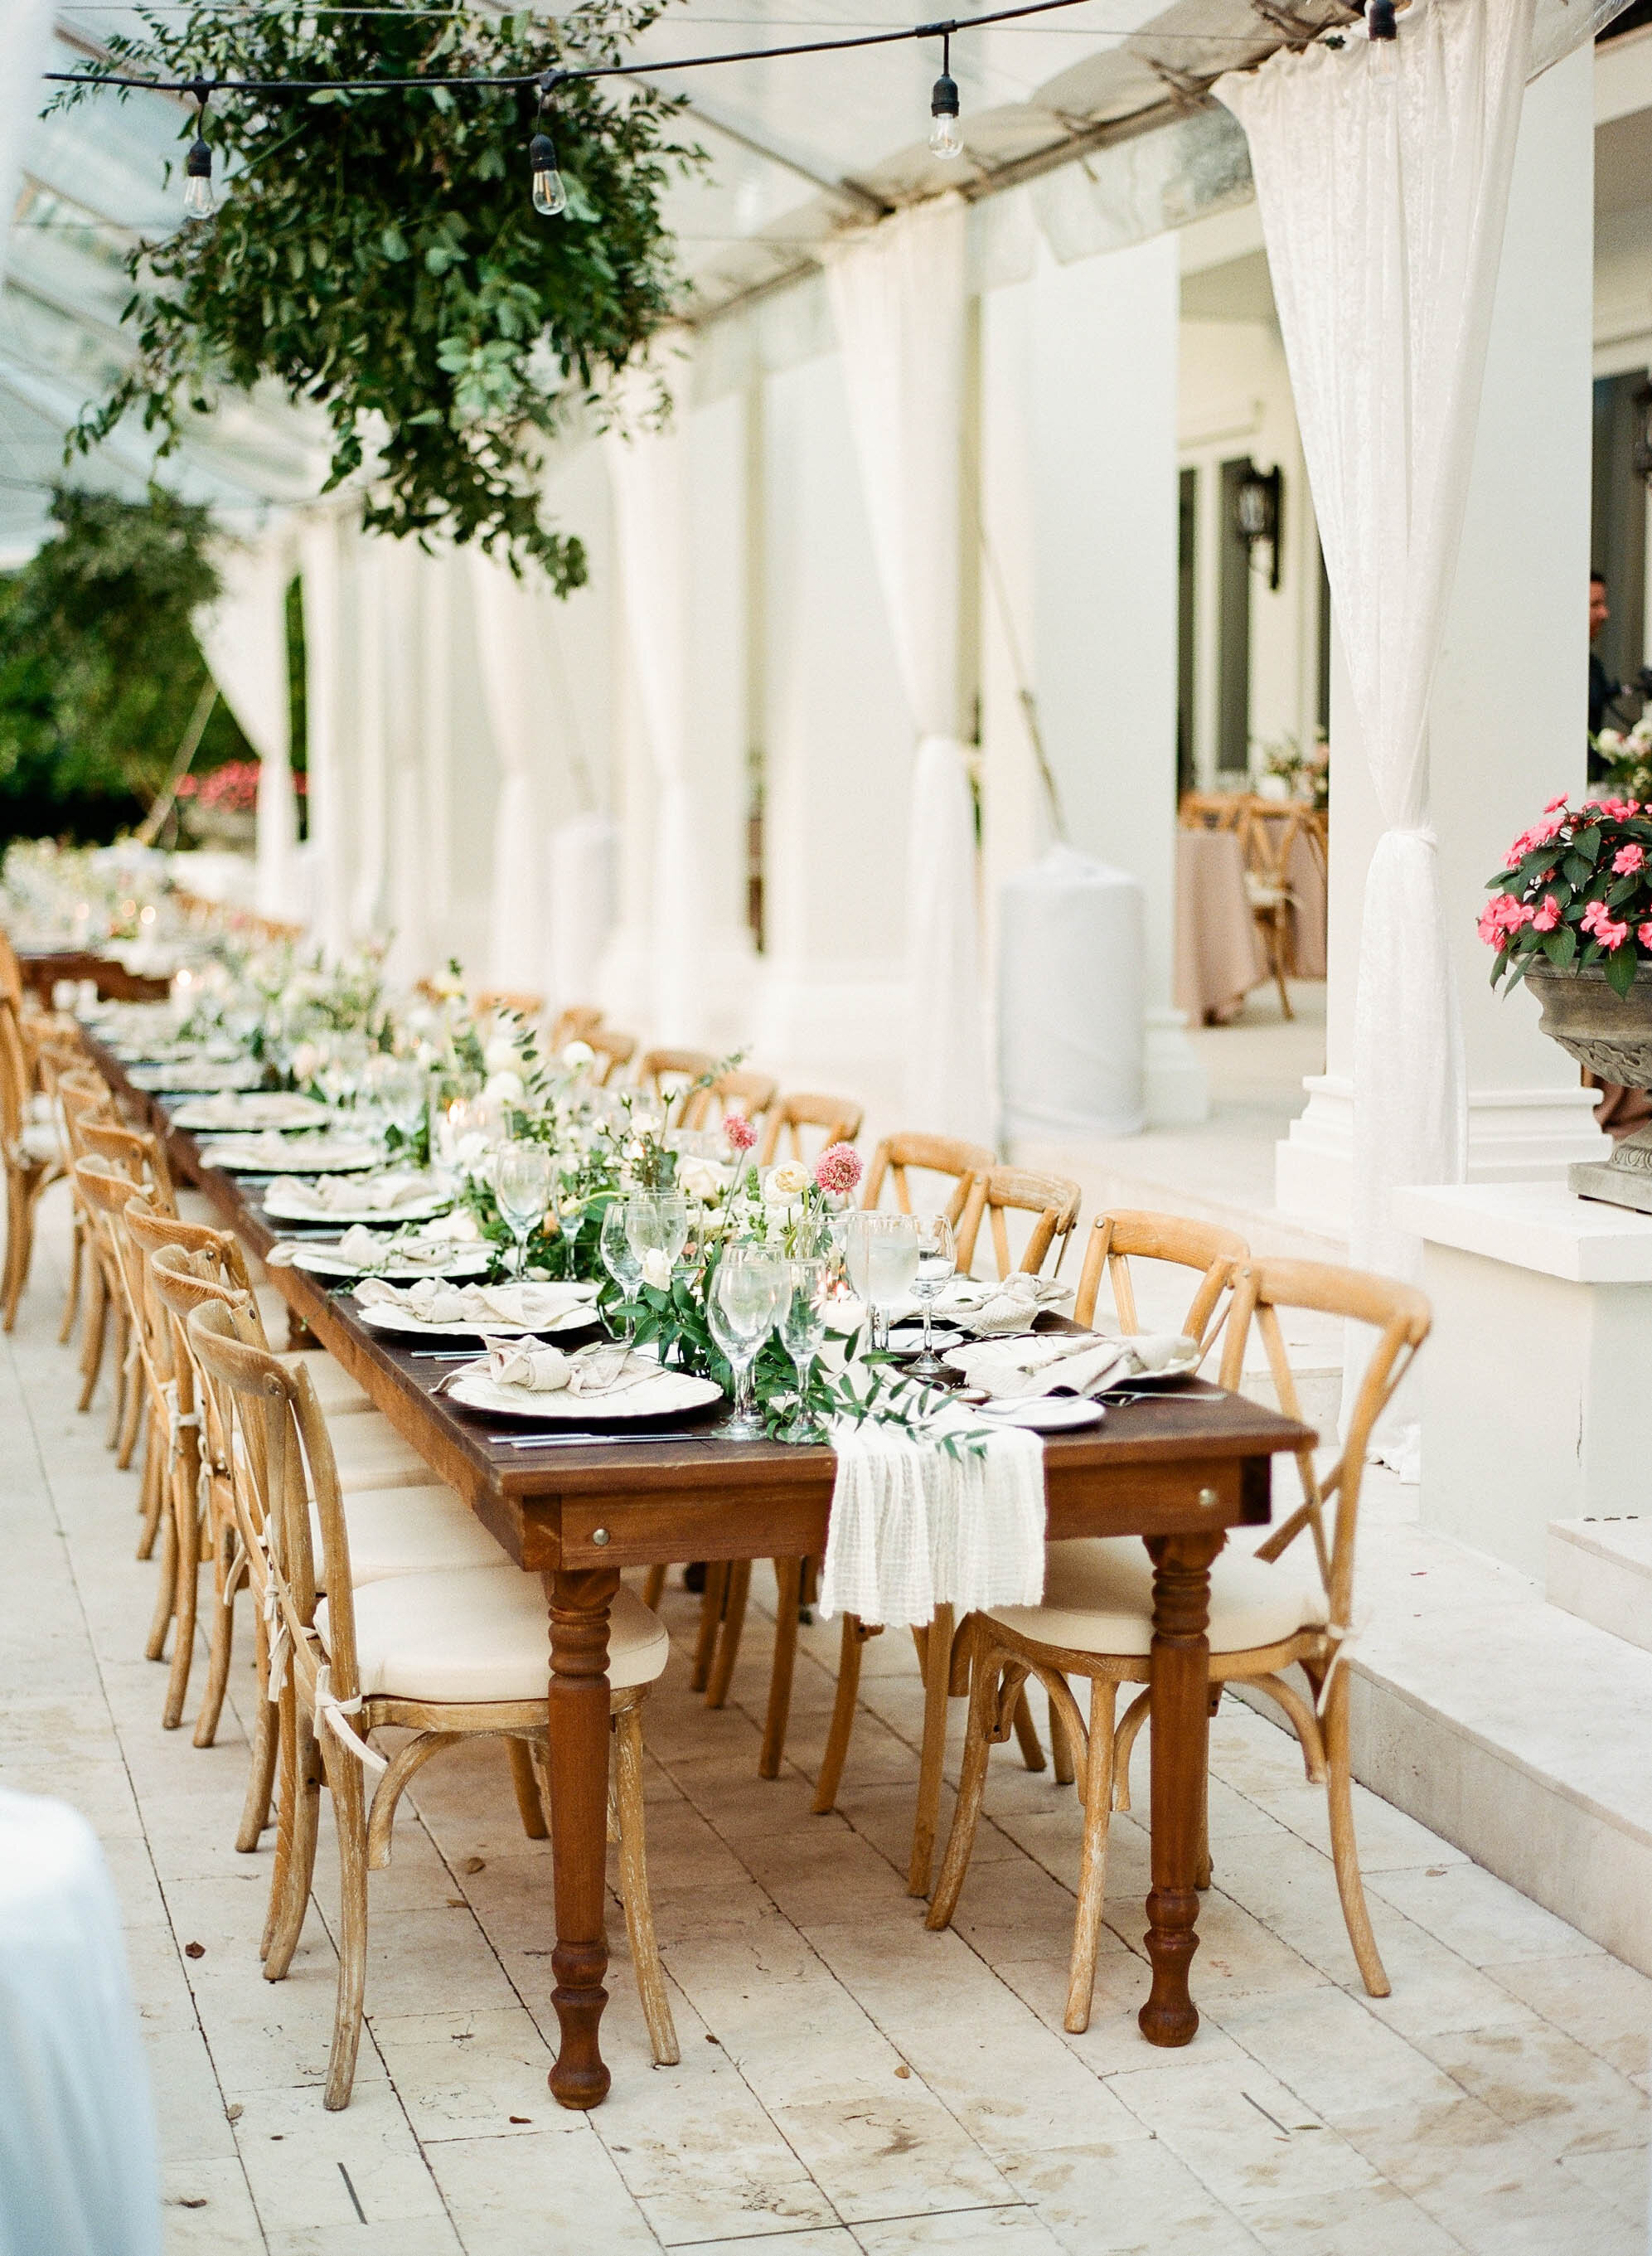 Contact Simple Rustic or Simple Florals — Simple Rustic & Simple Florals